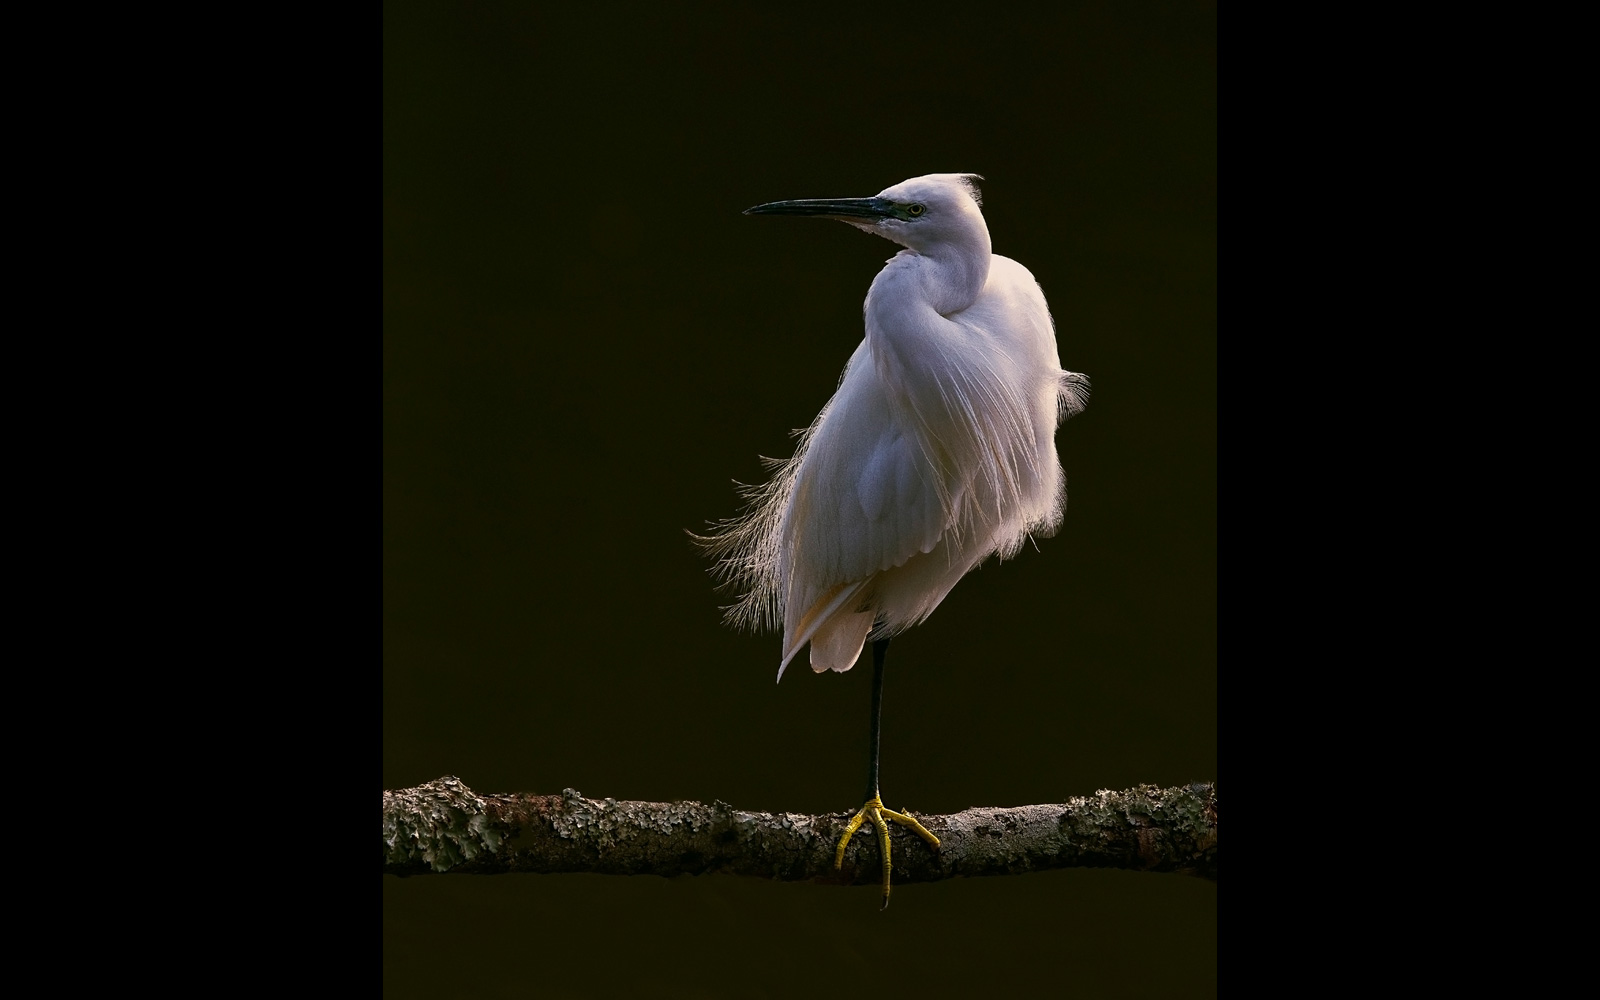 A little egret in Umkhobi Lagoon, KwaZulu-Natal, South Africa © Jacques Sellschop